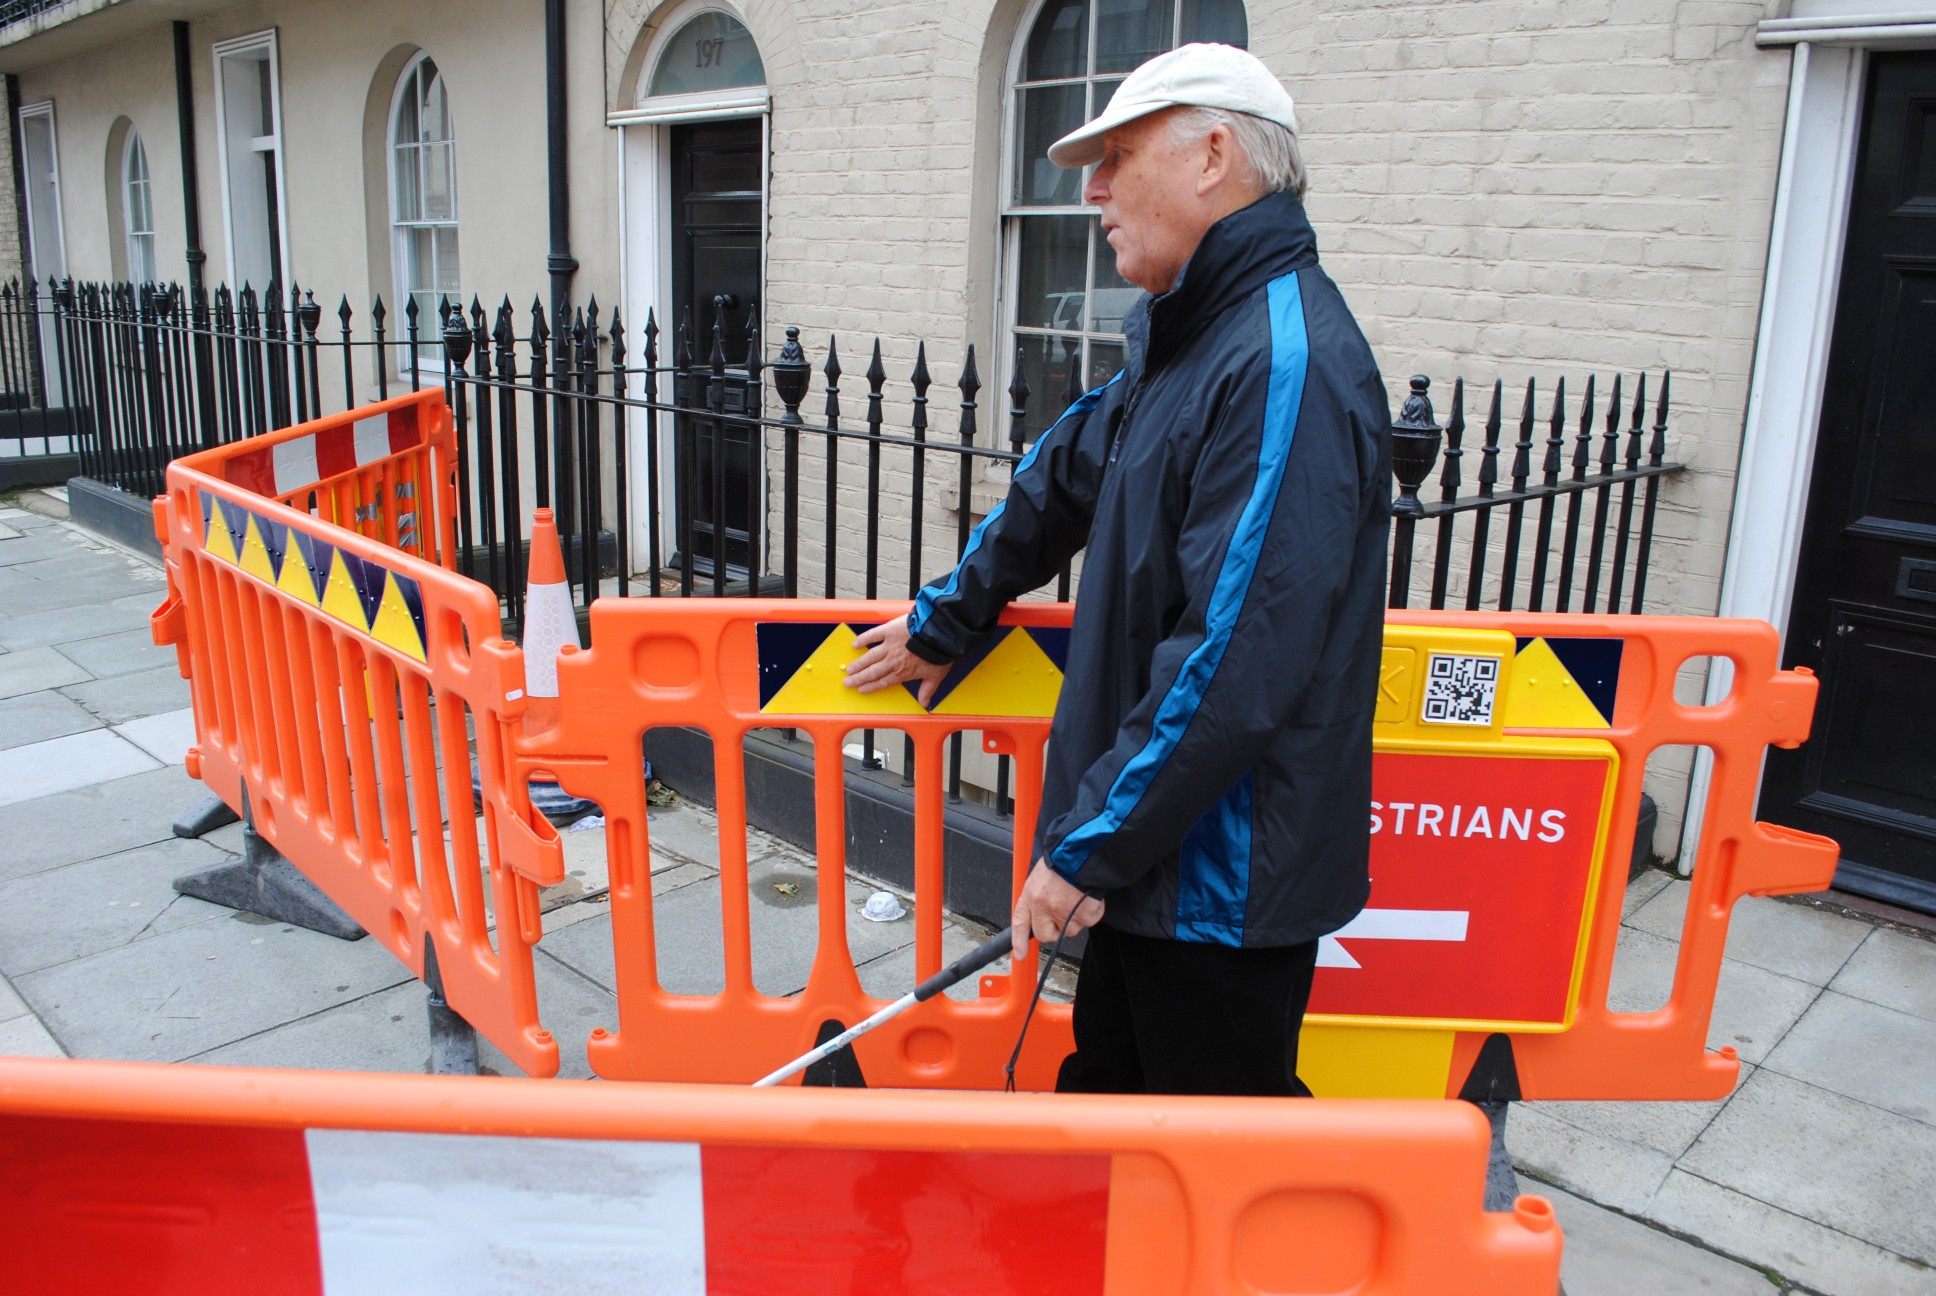 Photo of a long cane user negotiating a road works site. His free hand is following a line of tactile dots on the barriers.